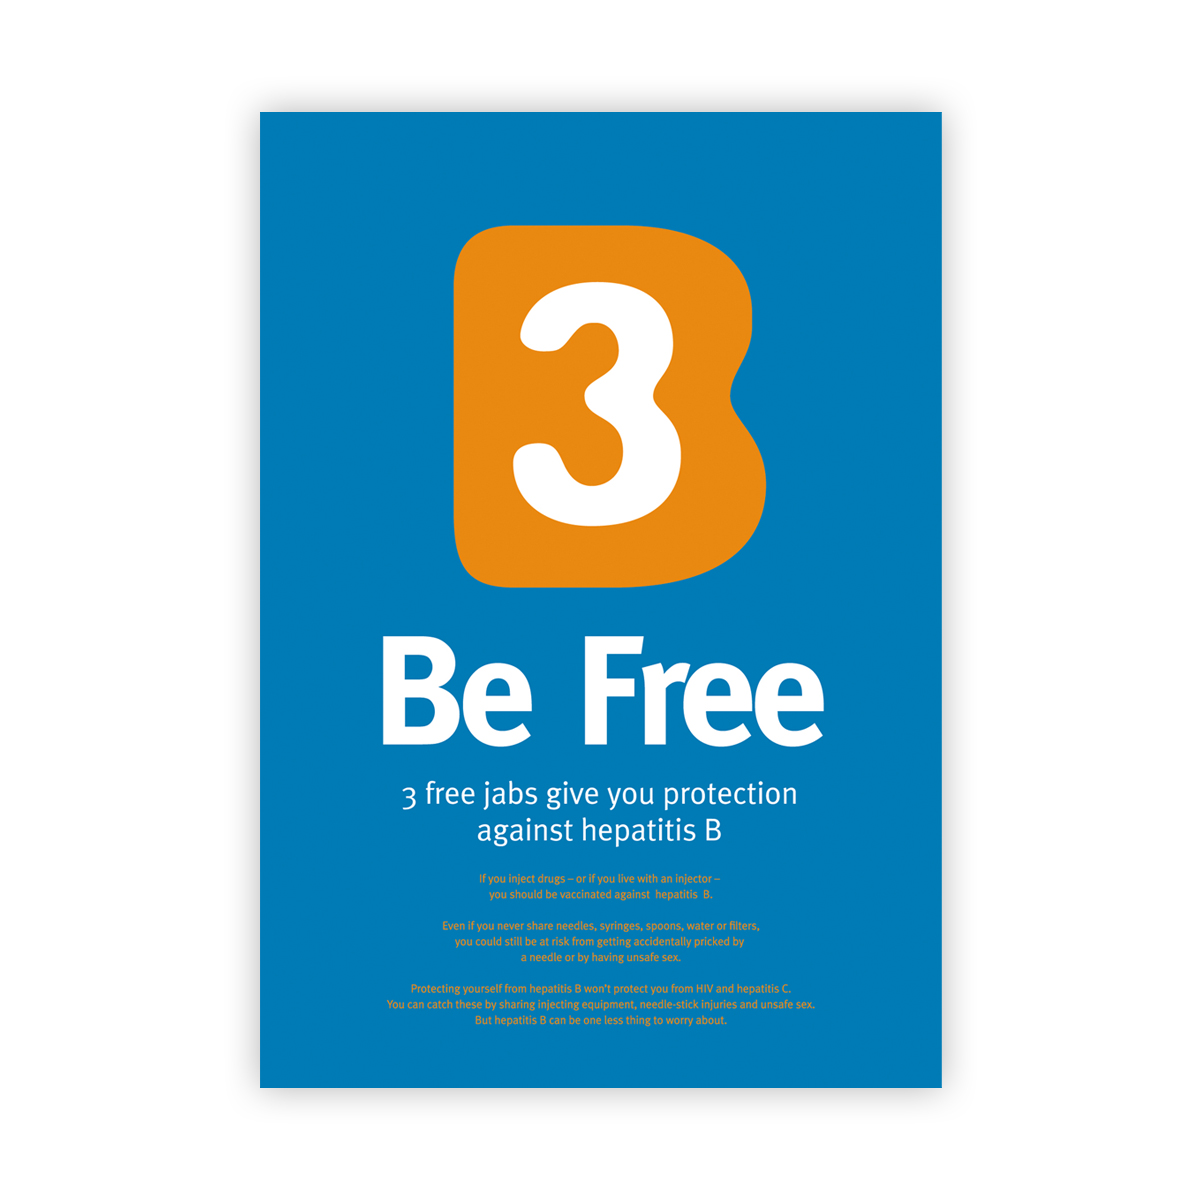 'B3 Be Free' campaign: poster (A3)